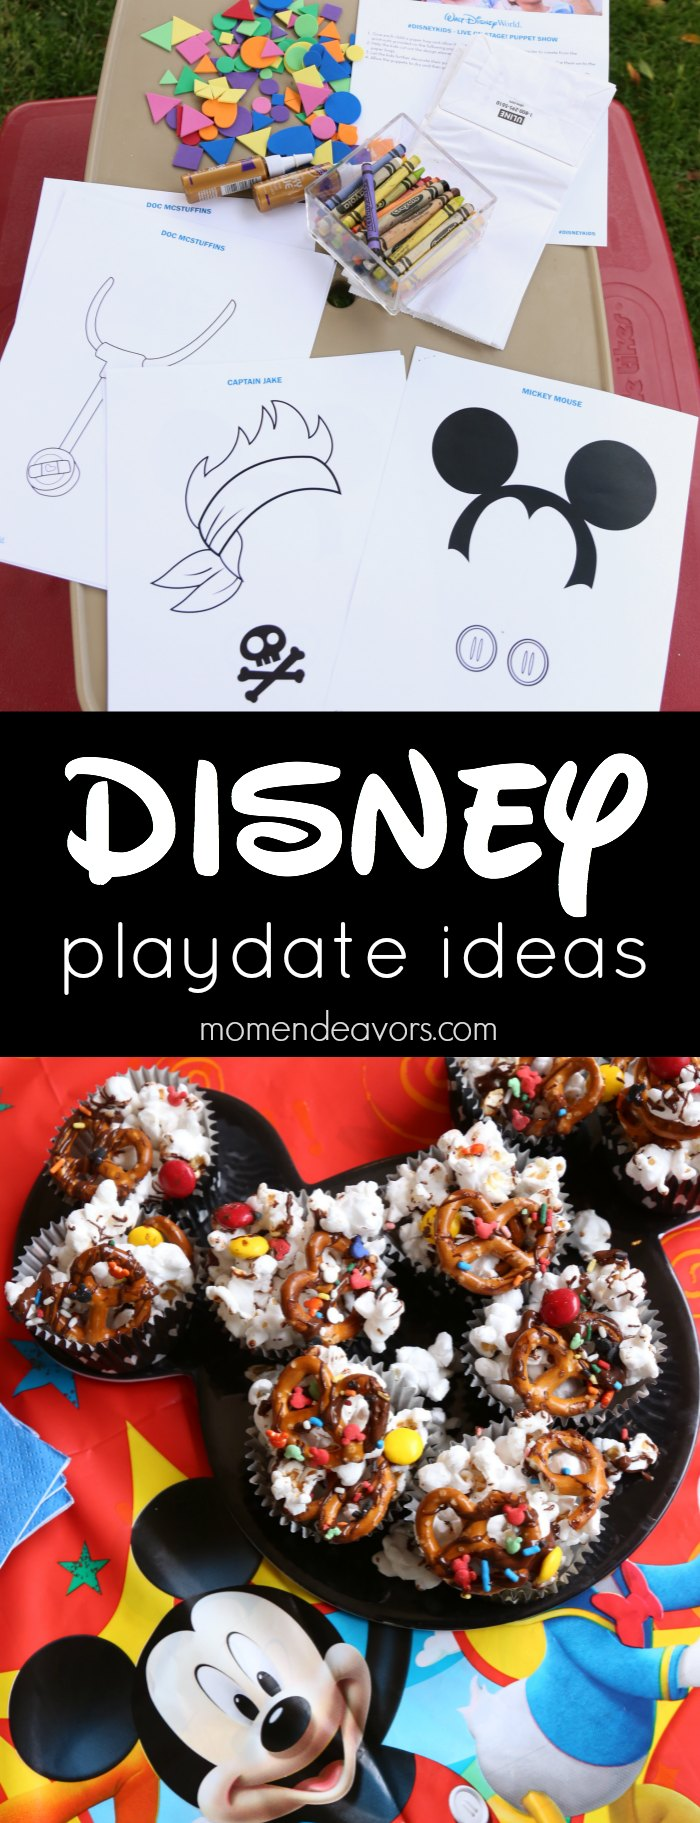 Easy Disney Kids Playdate Ideas